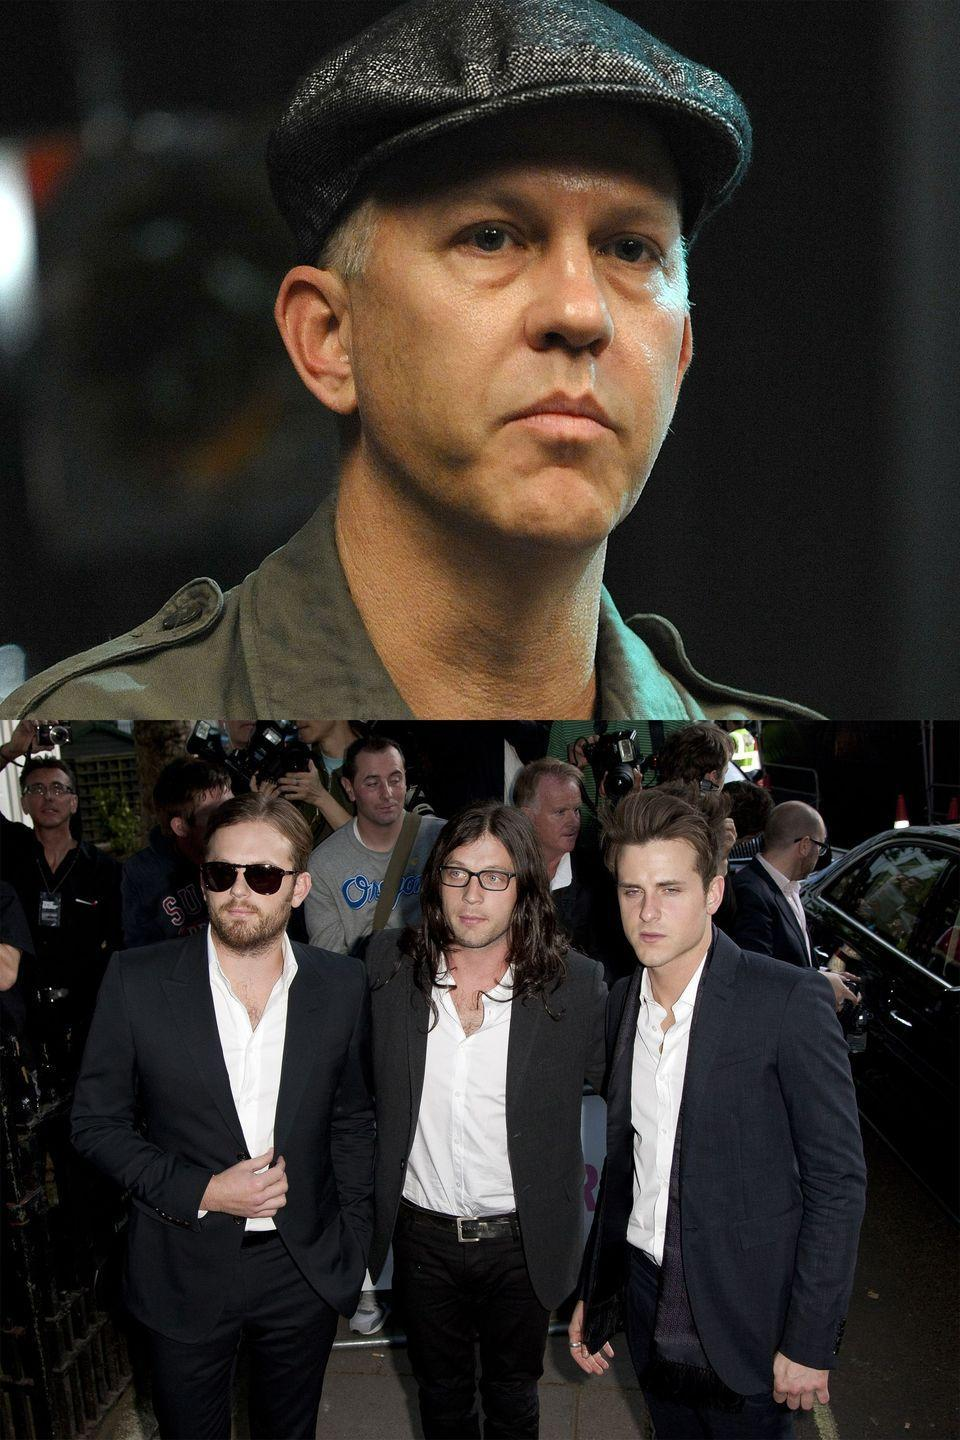 "<p>When Kings of Leon said ""no thanks"" to <em>Glee</em> using one of their songs, the show's creator Ryan Murphy <a href=""http://www.hollywoodreporter.com/news/hot-business-glee-75593"" rel=""nofollow noopener"" target=""_blank"" data-ylk=""slk:lashed out"" class=""link rapid-noclick-resp"">lashed out</a>, calling them ""self-centered assholes."" He added that the band ""missed the big picture"" in that the show could inspire a 7-year-old ""to join a glee club or pick up a musical instrument."" The band's frontman, Caleb Followill, said they were ""not sure where the anger is coming from,"" while drummer <a href=""http://www.billboard.com/articles/news/473393/kings-of-leon-to-glees-ryan-murphy-go-see-a-therapist"" rel=""nofollow noopener"" target=""_blank"" data-ylk=""slk:Nathan Followill implored"" class=""link rapid-noclick-resp"">Nathan Followill implored</a> Murphy to ""see a therapist, get a manicure, [and] buy a new bra."" Murphy called him ""a homophobe badly in need of some education."" But they eventually made up, <a href=""http://www.hollywoodreporter.com/news/how-gwyneth-paltrow-got-glees-100380"" rel=""nofollow noopener"" target=""_blank"" data-ylk=""slk:reportedly"" class=""link rapid-noclick-resp"">reportedly</a> thanks to good ol' Gwyneth Paltrow, who mediated a truce over text messages.</p>"